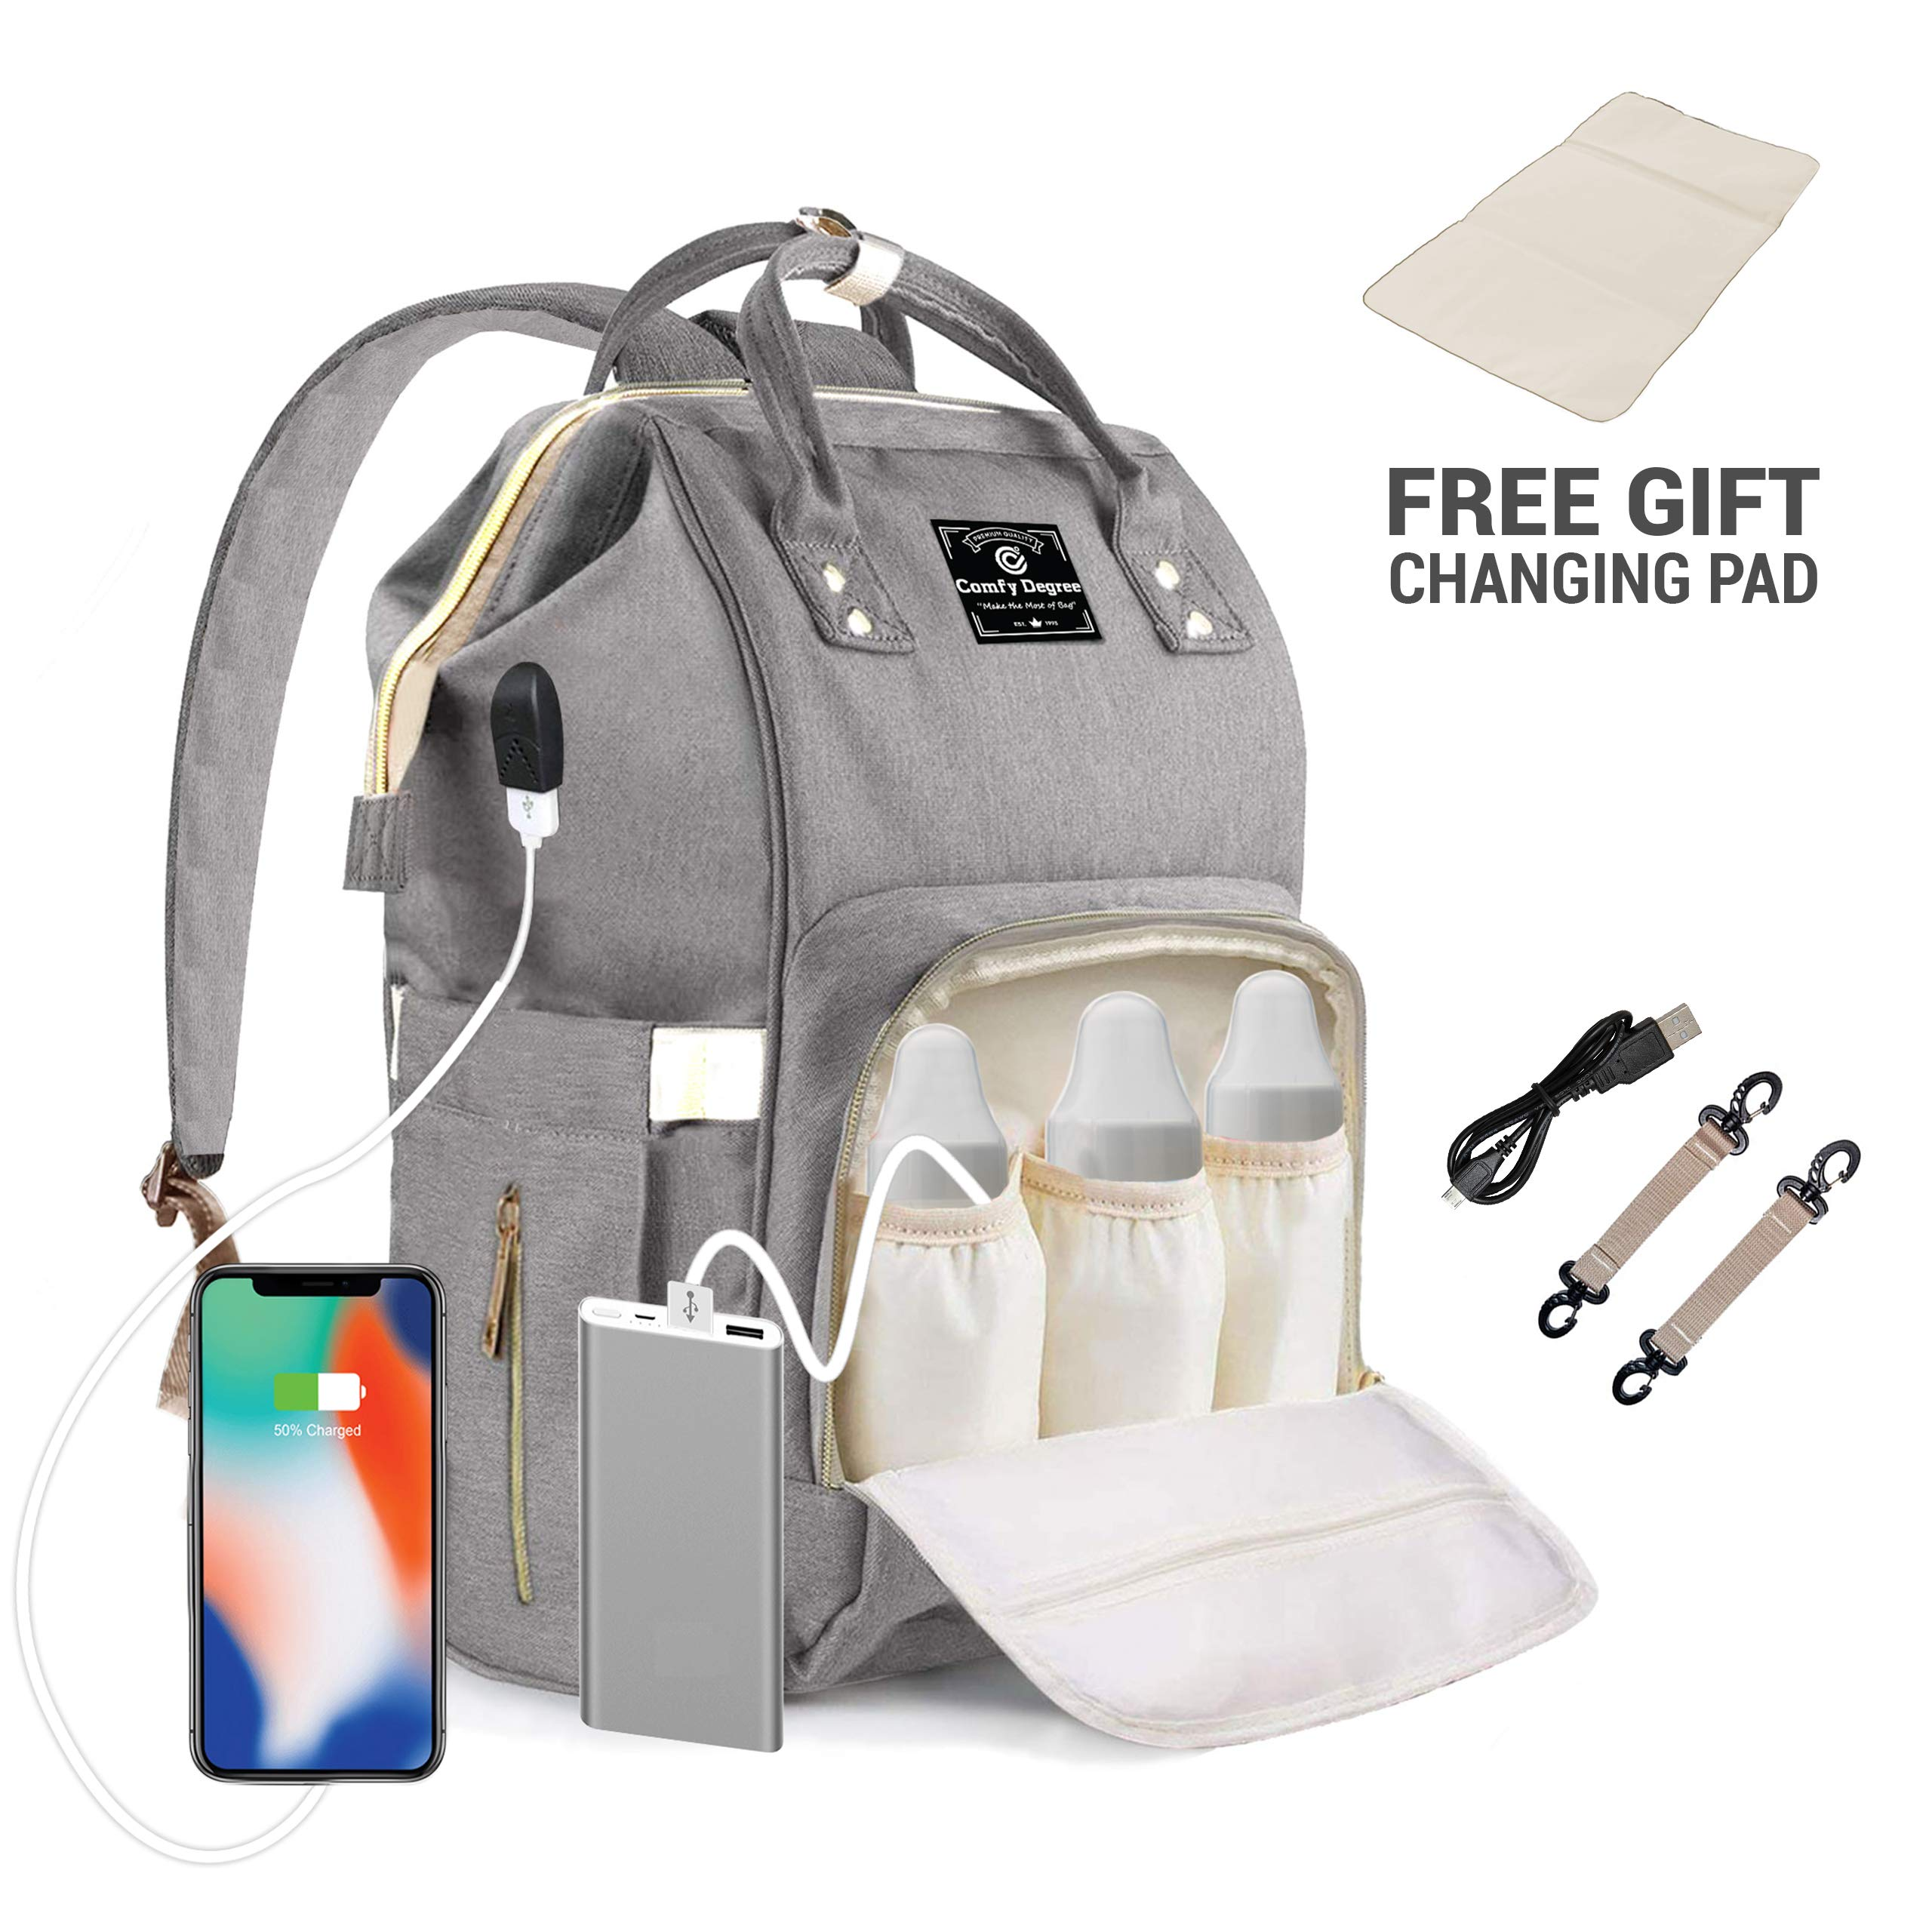 ComfyDegree Nappy Changing Organizer Bag Large Capacity Diaper Baby Travel Backpack with USB Charging Port, 3x Insulated Bottle Warmer Pockets and Waterproof Fabric Features for Mom and Dad (Gray)